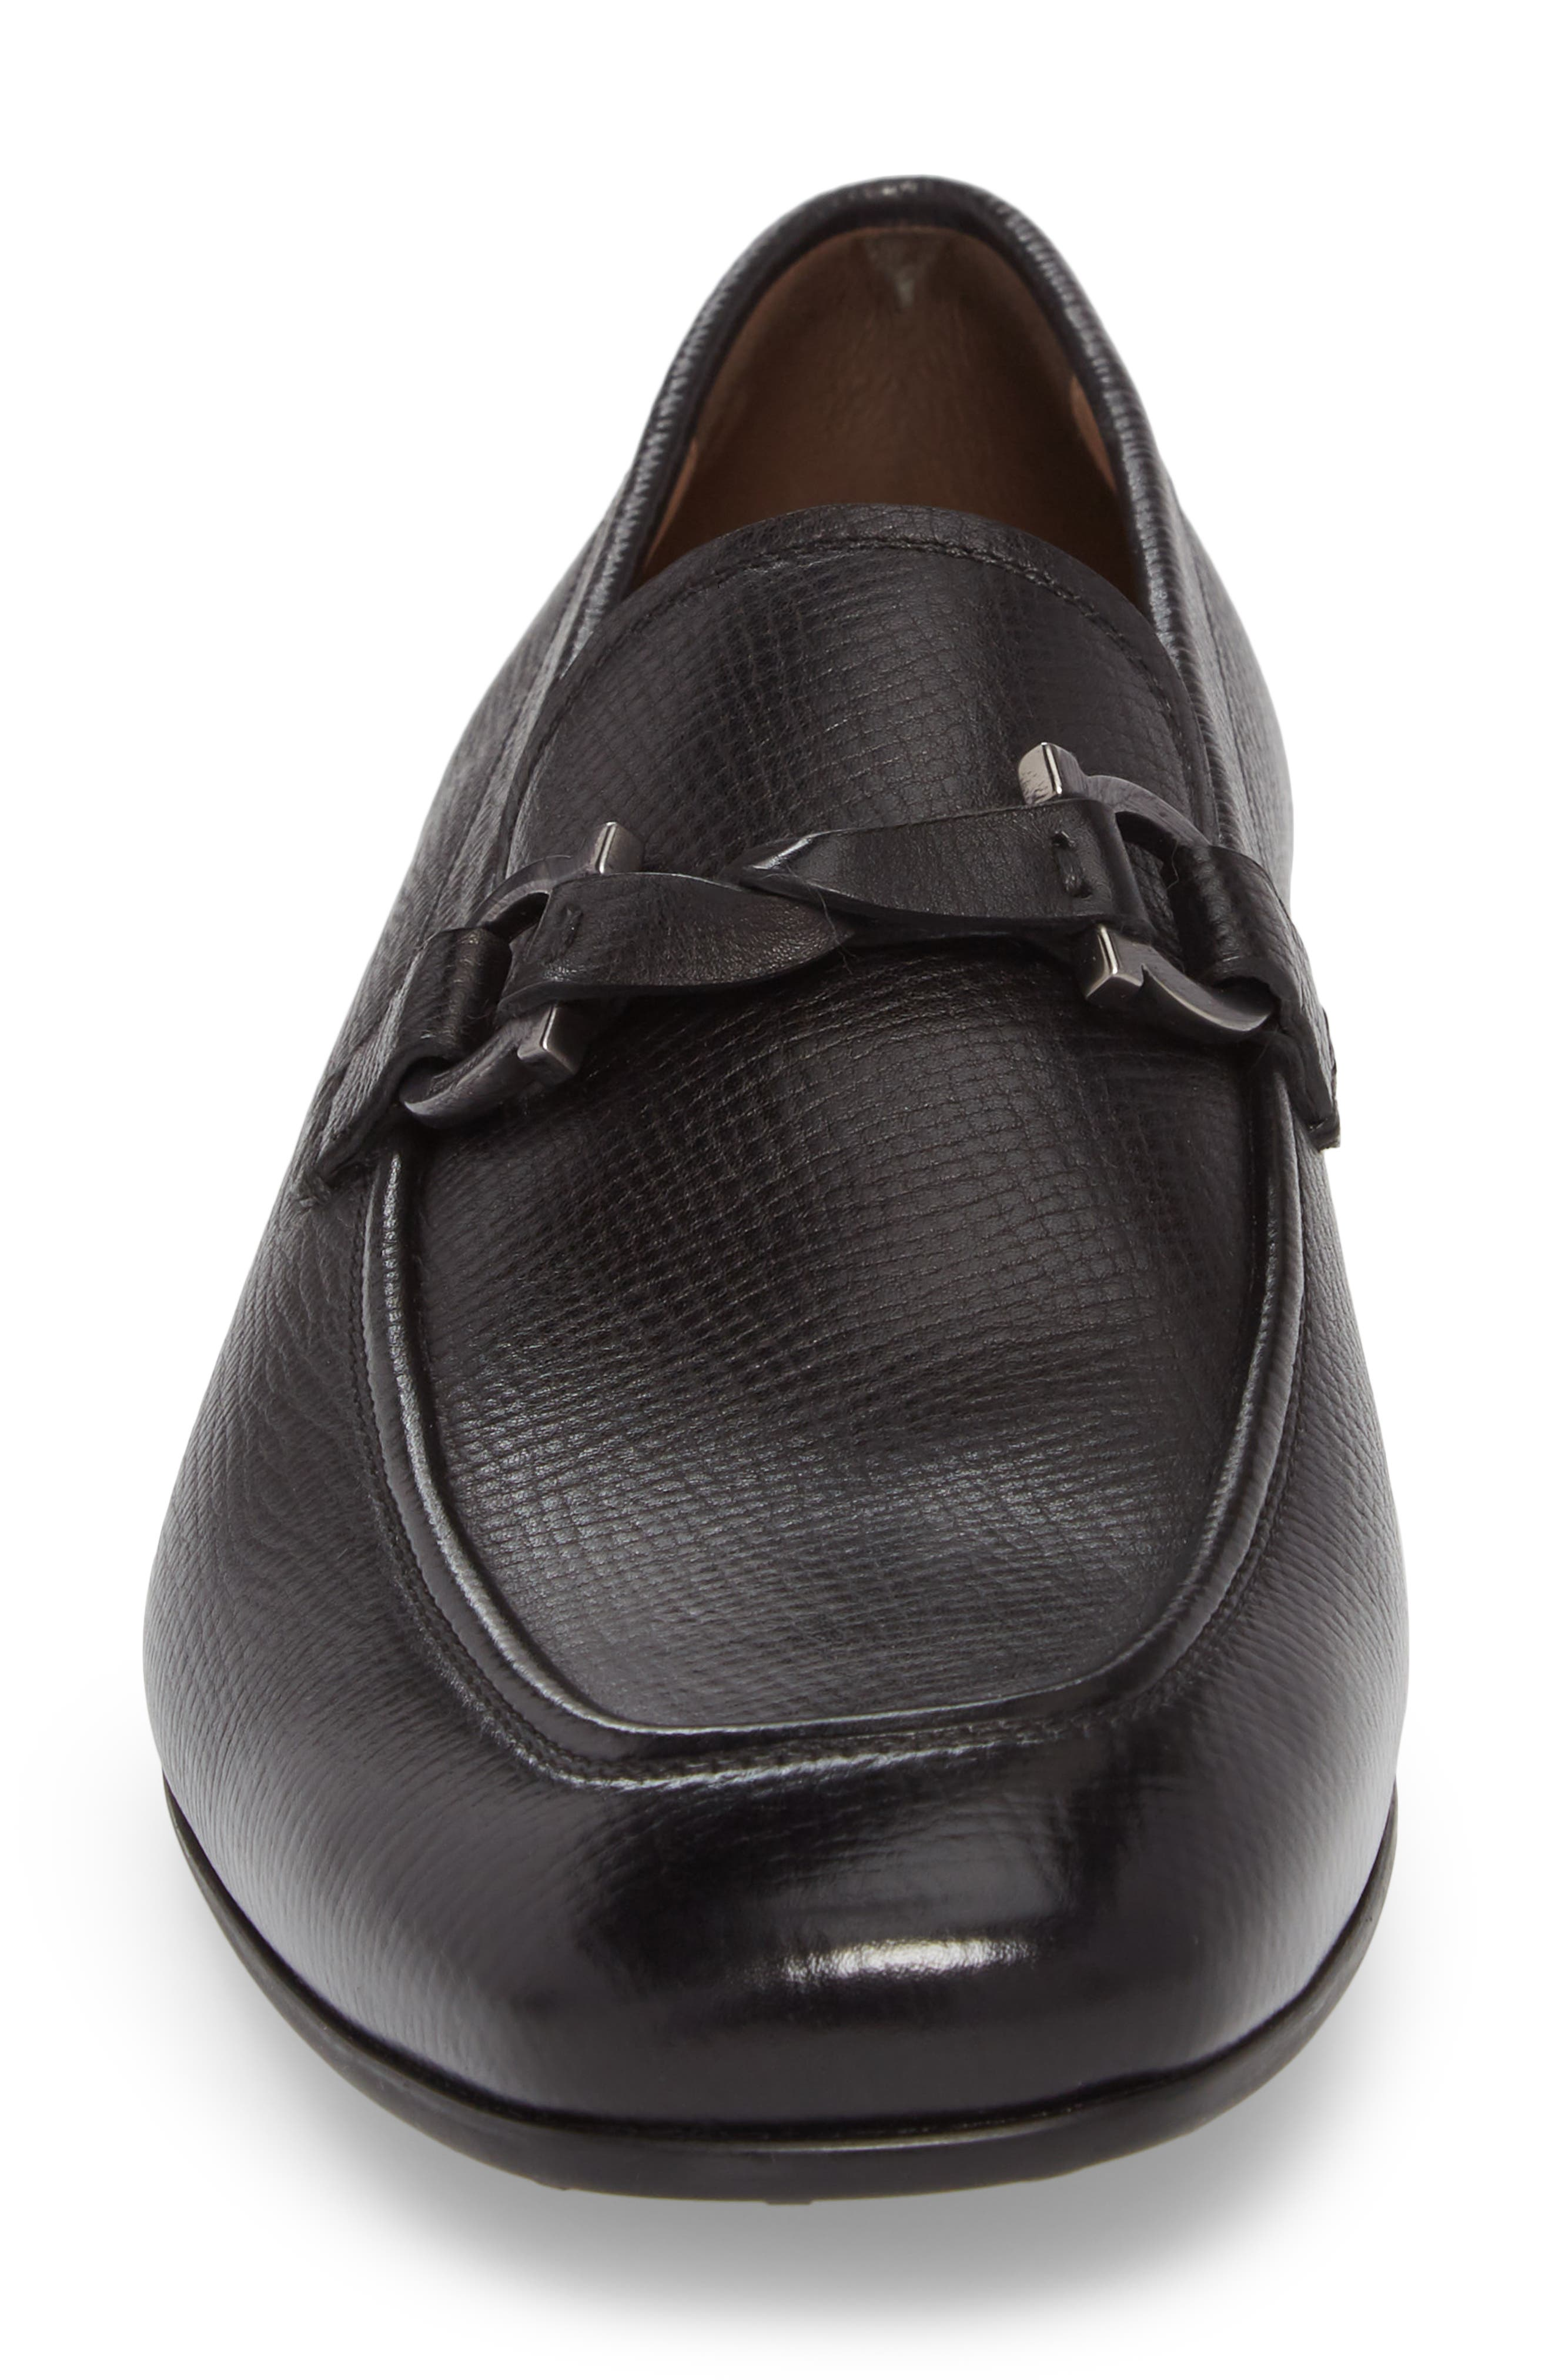 Barry Looped Bit Loafer,                             Alternate thumbnail 4, color,                             NERO LEATHER